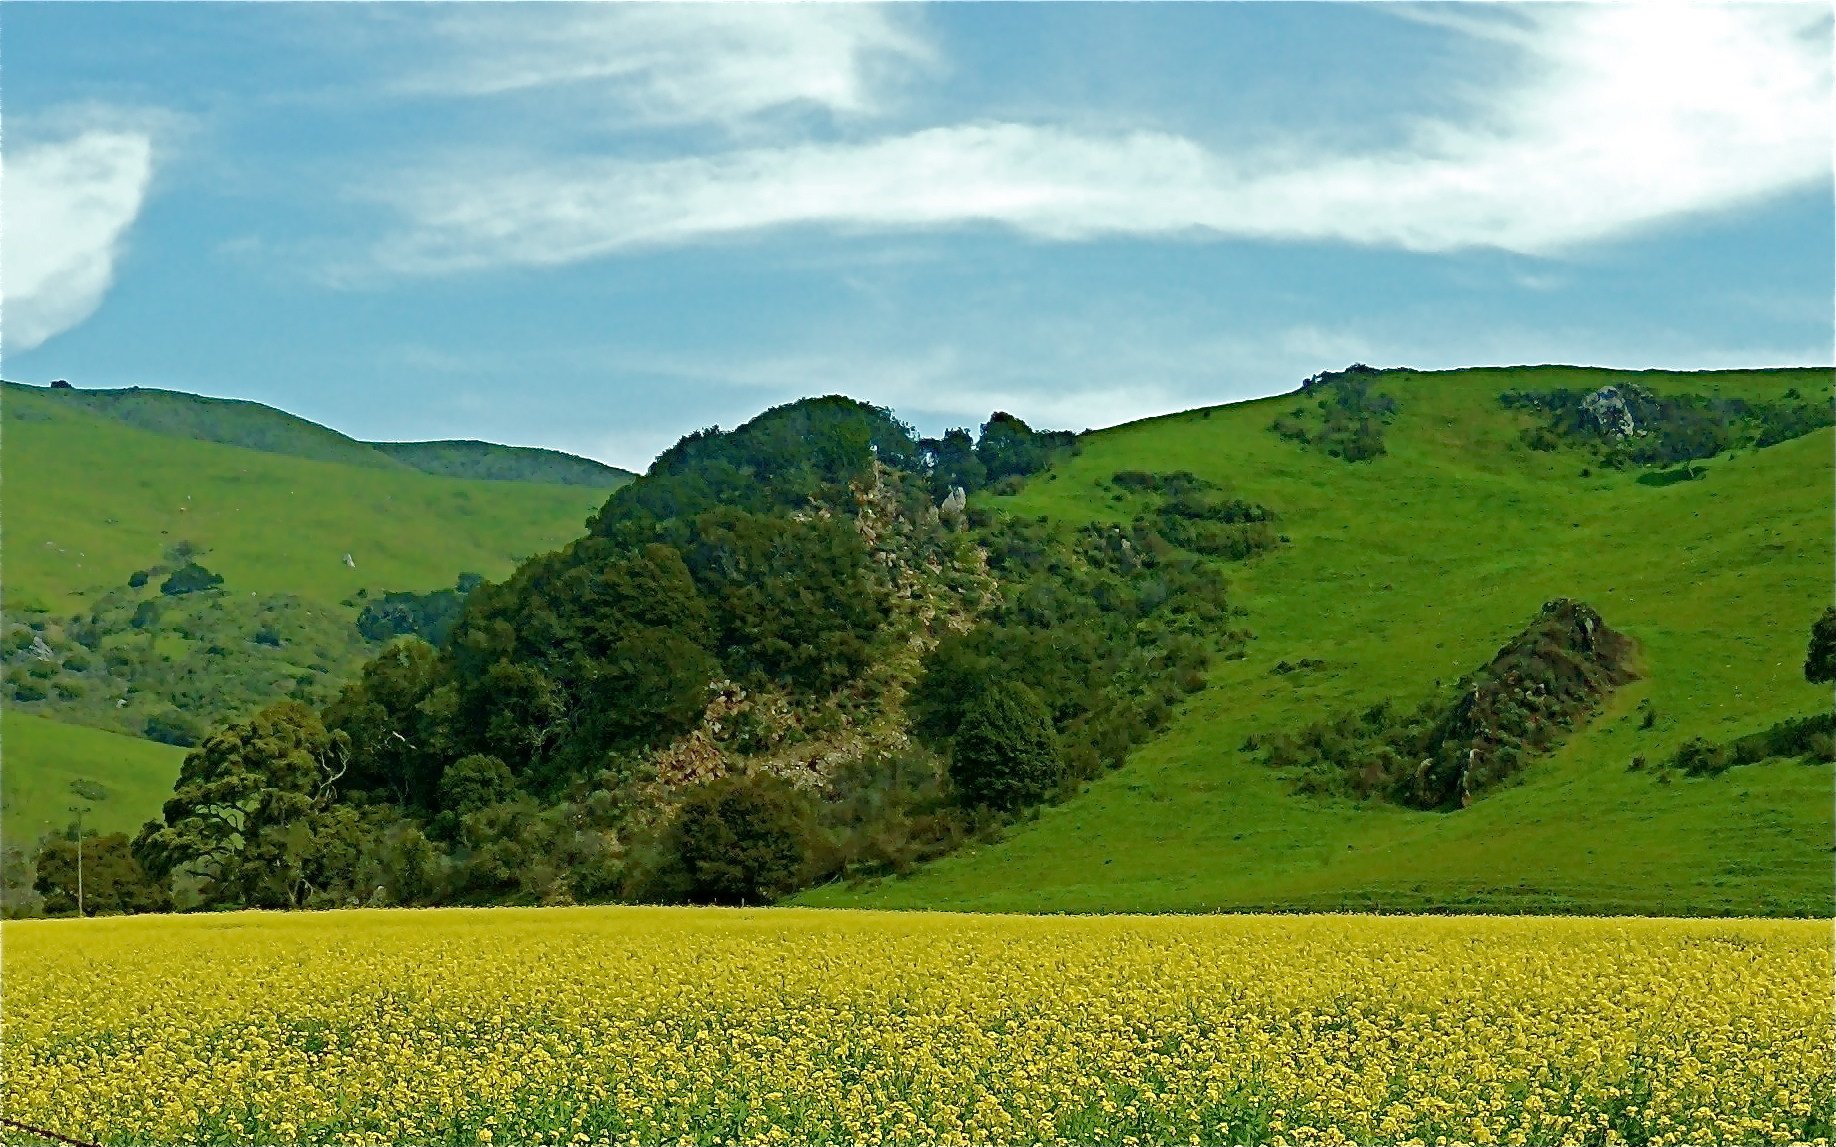 Mustard agains hill on ranchland of San Luis Obispo County